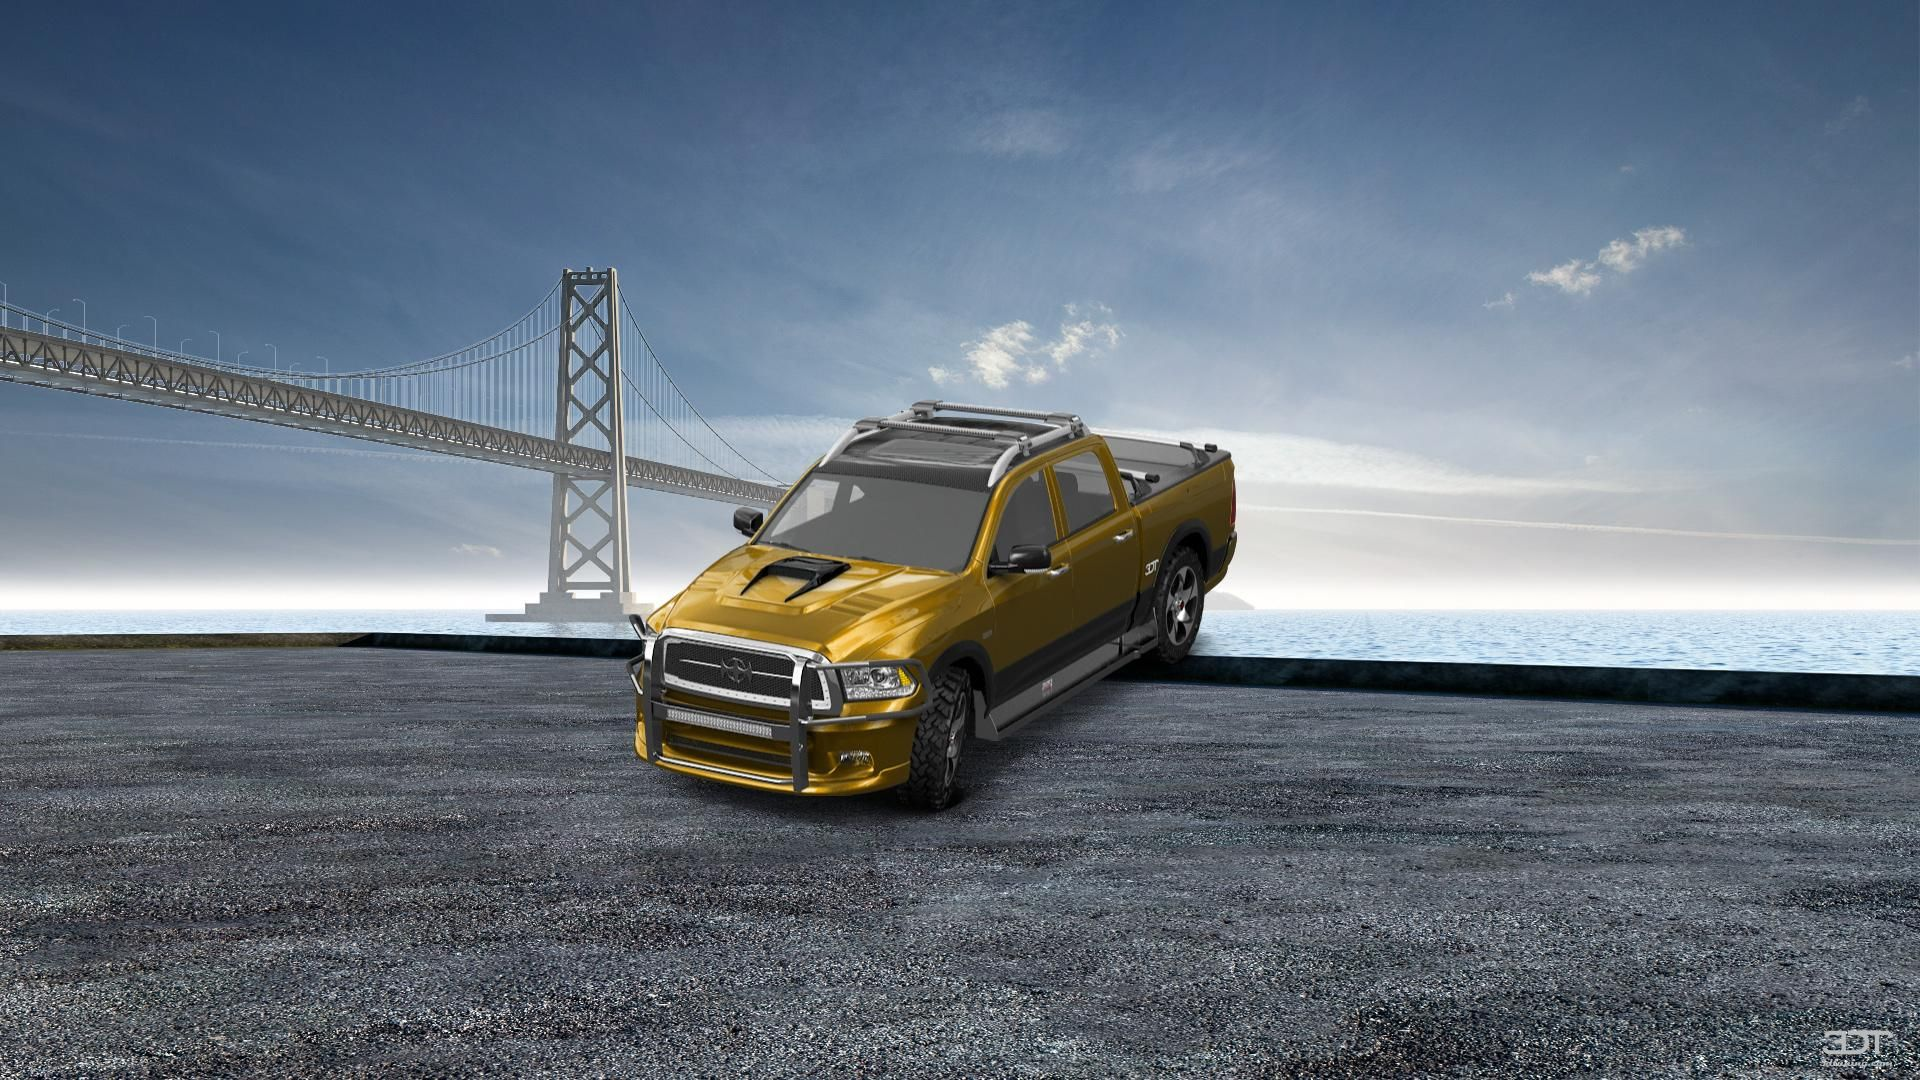 Checkout my tuning Dodge RAM2500CrewCab 2014 at 3DTuning 3dtuning